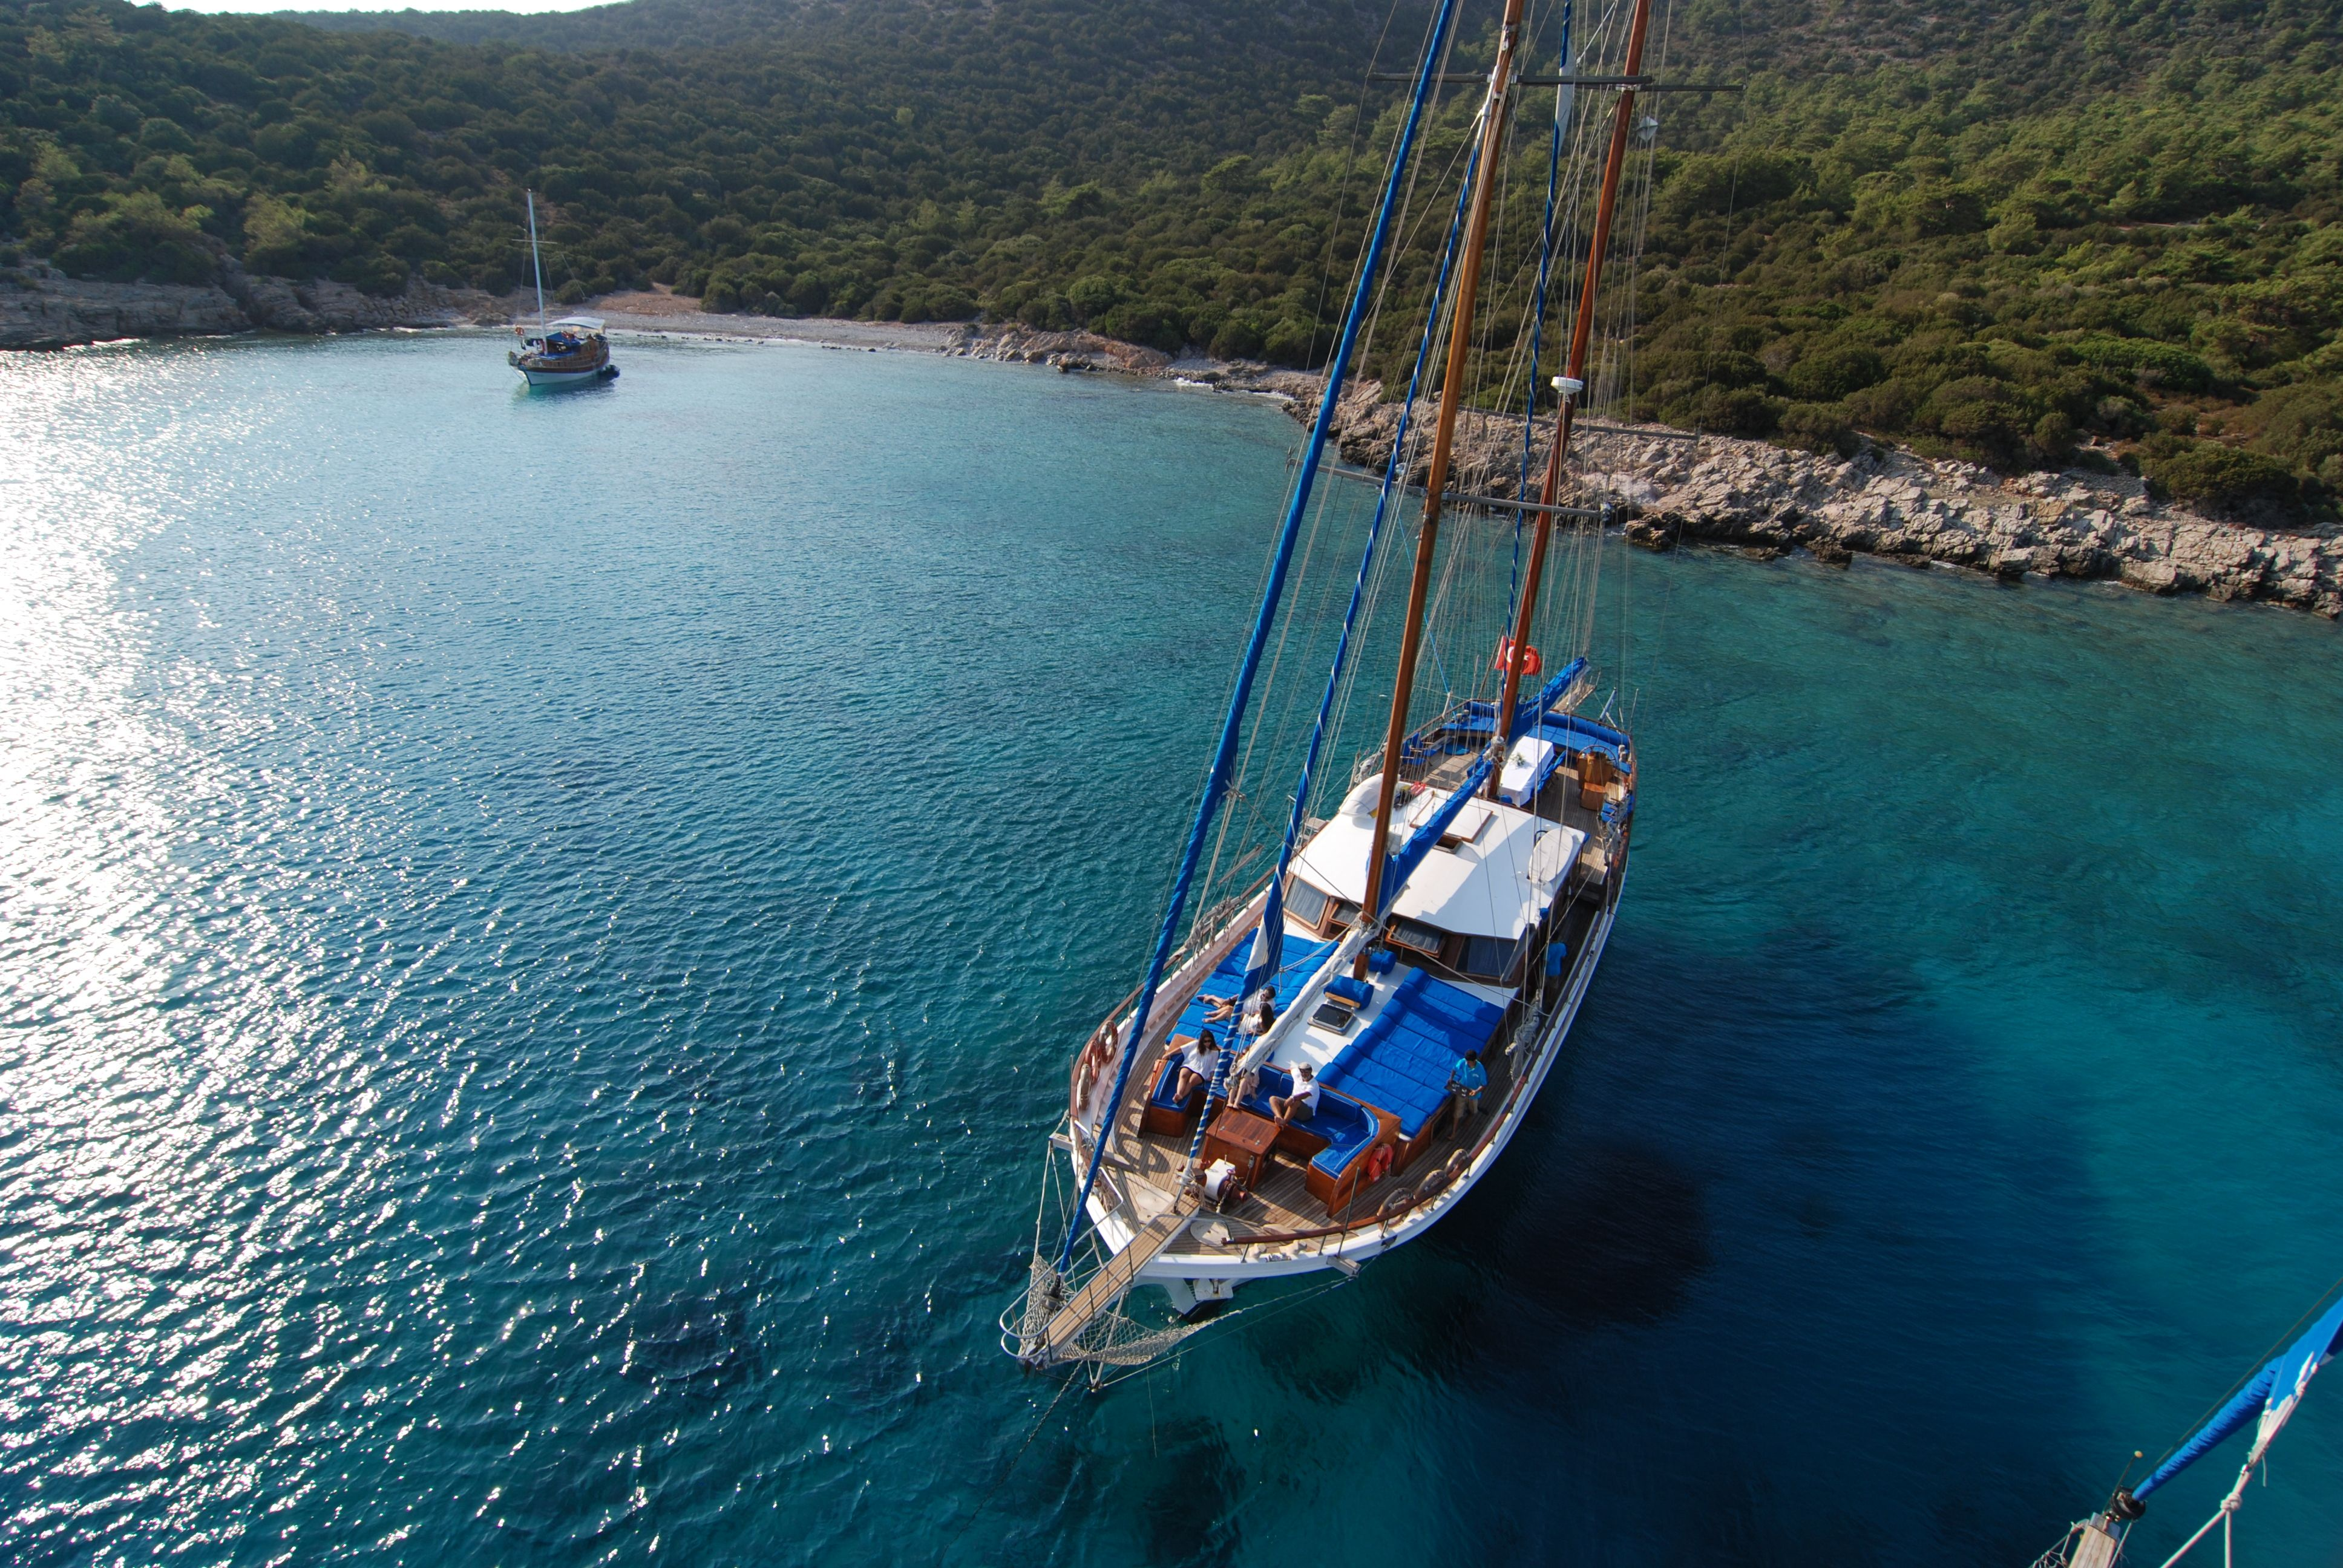 Blue Escape 5-Day Sailing Tour from Gocek to Fethiye 1